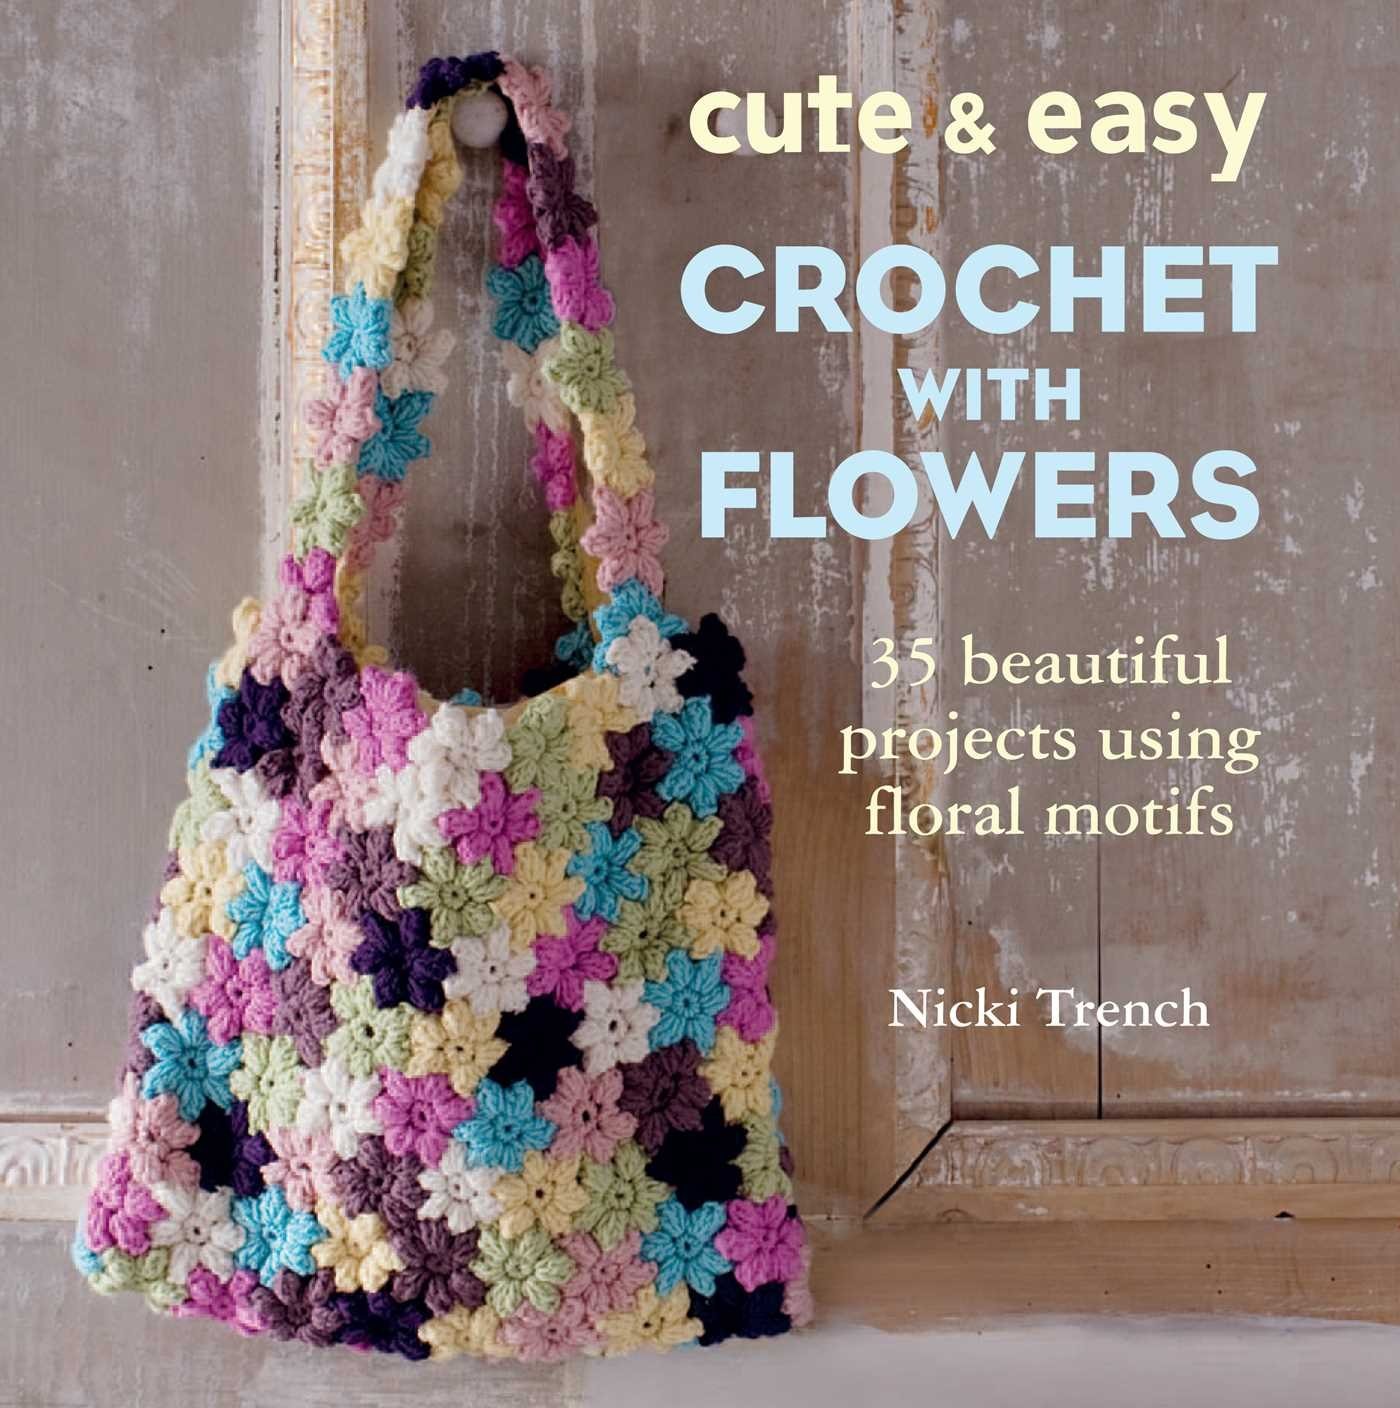 Cute easy crochet with flowers 35 beautiful projects using floral cute easy crochet with flowers 35 beautiful projects using floral motifs nicki trench 9781782490678 amazon books izmirmasajfo Image collections